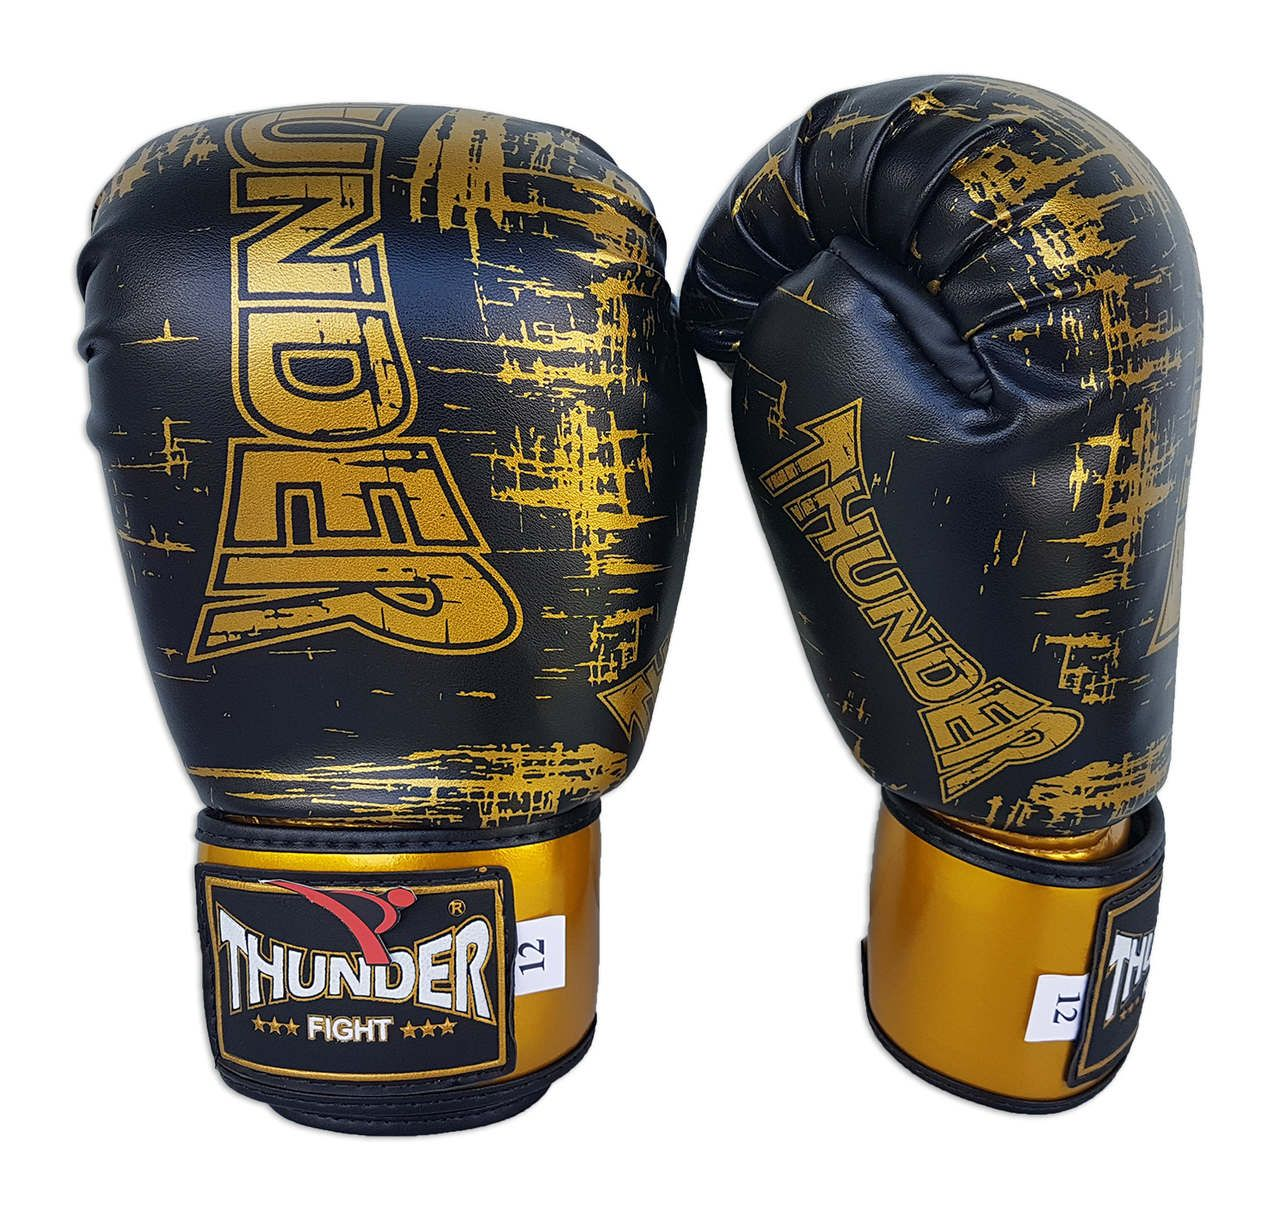 Super Kit de Muay Thai / Kickboxing 12oz - Caneleira G - Preto - Thunder Fight - PRALUTA SHOP